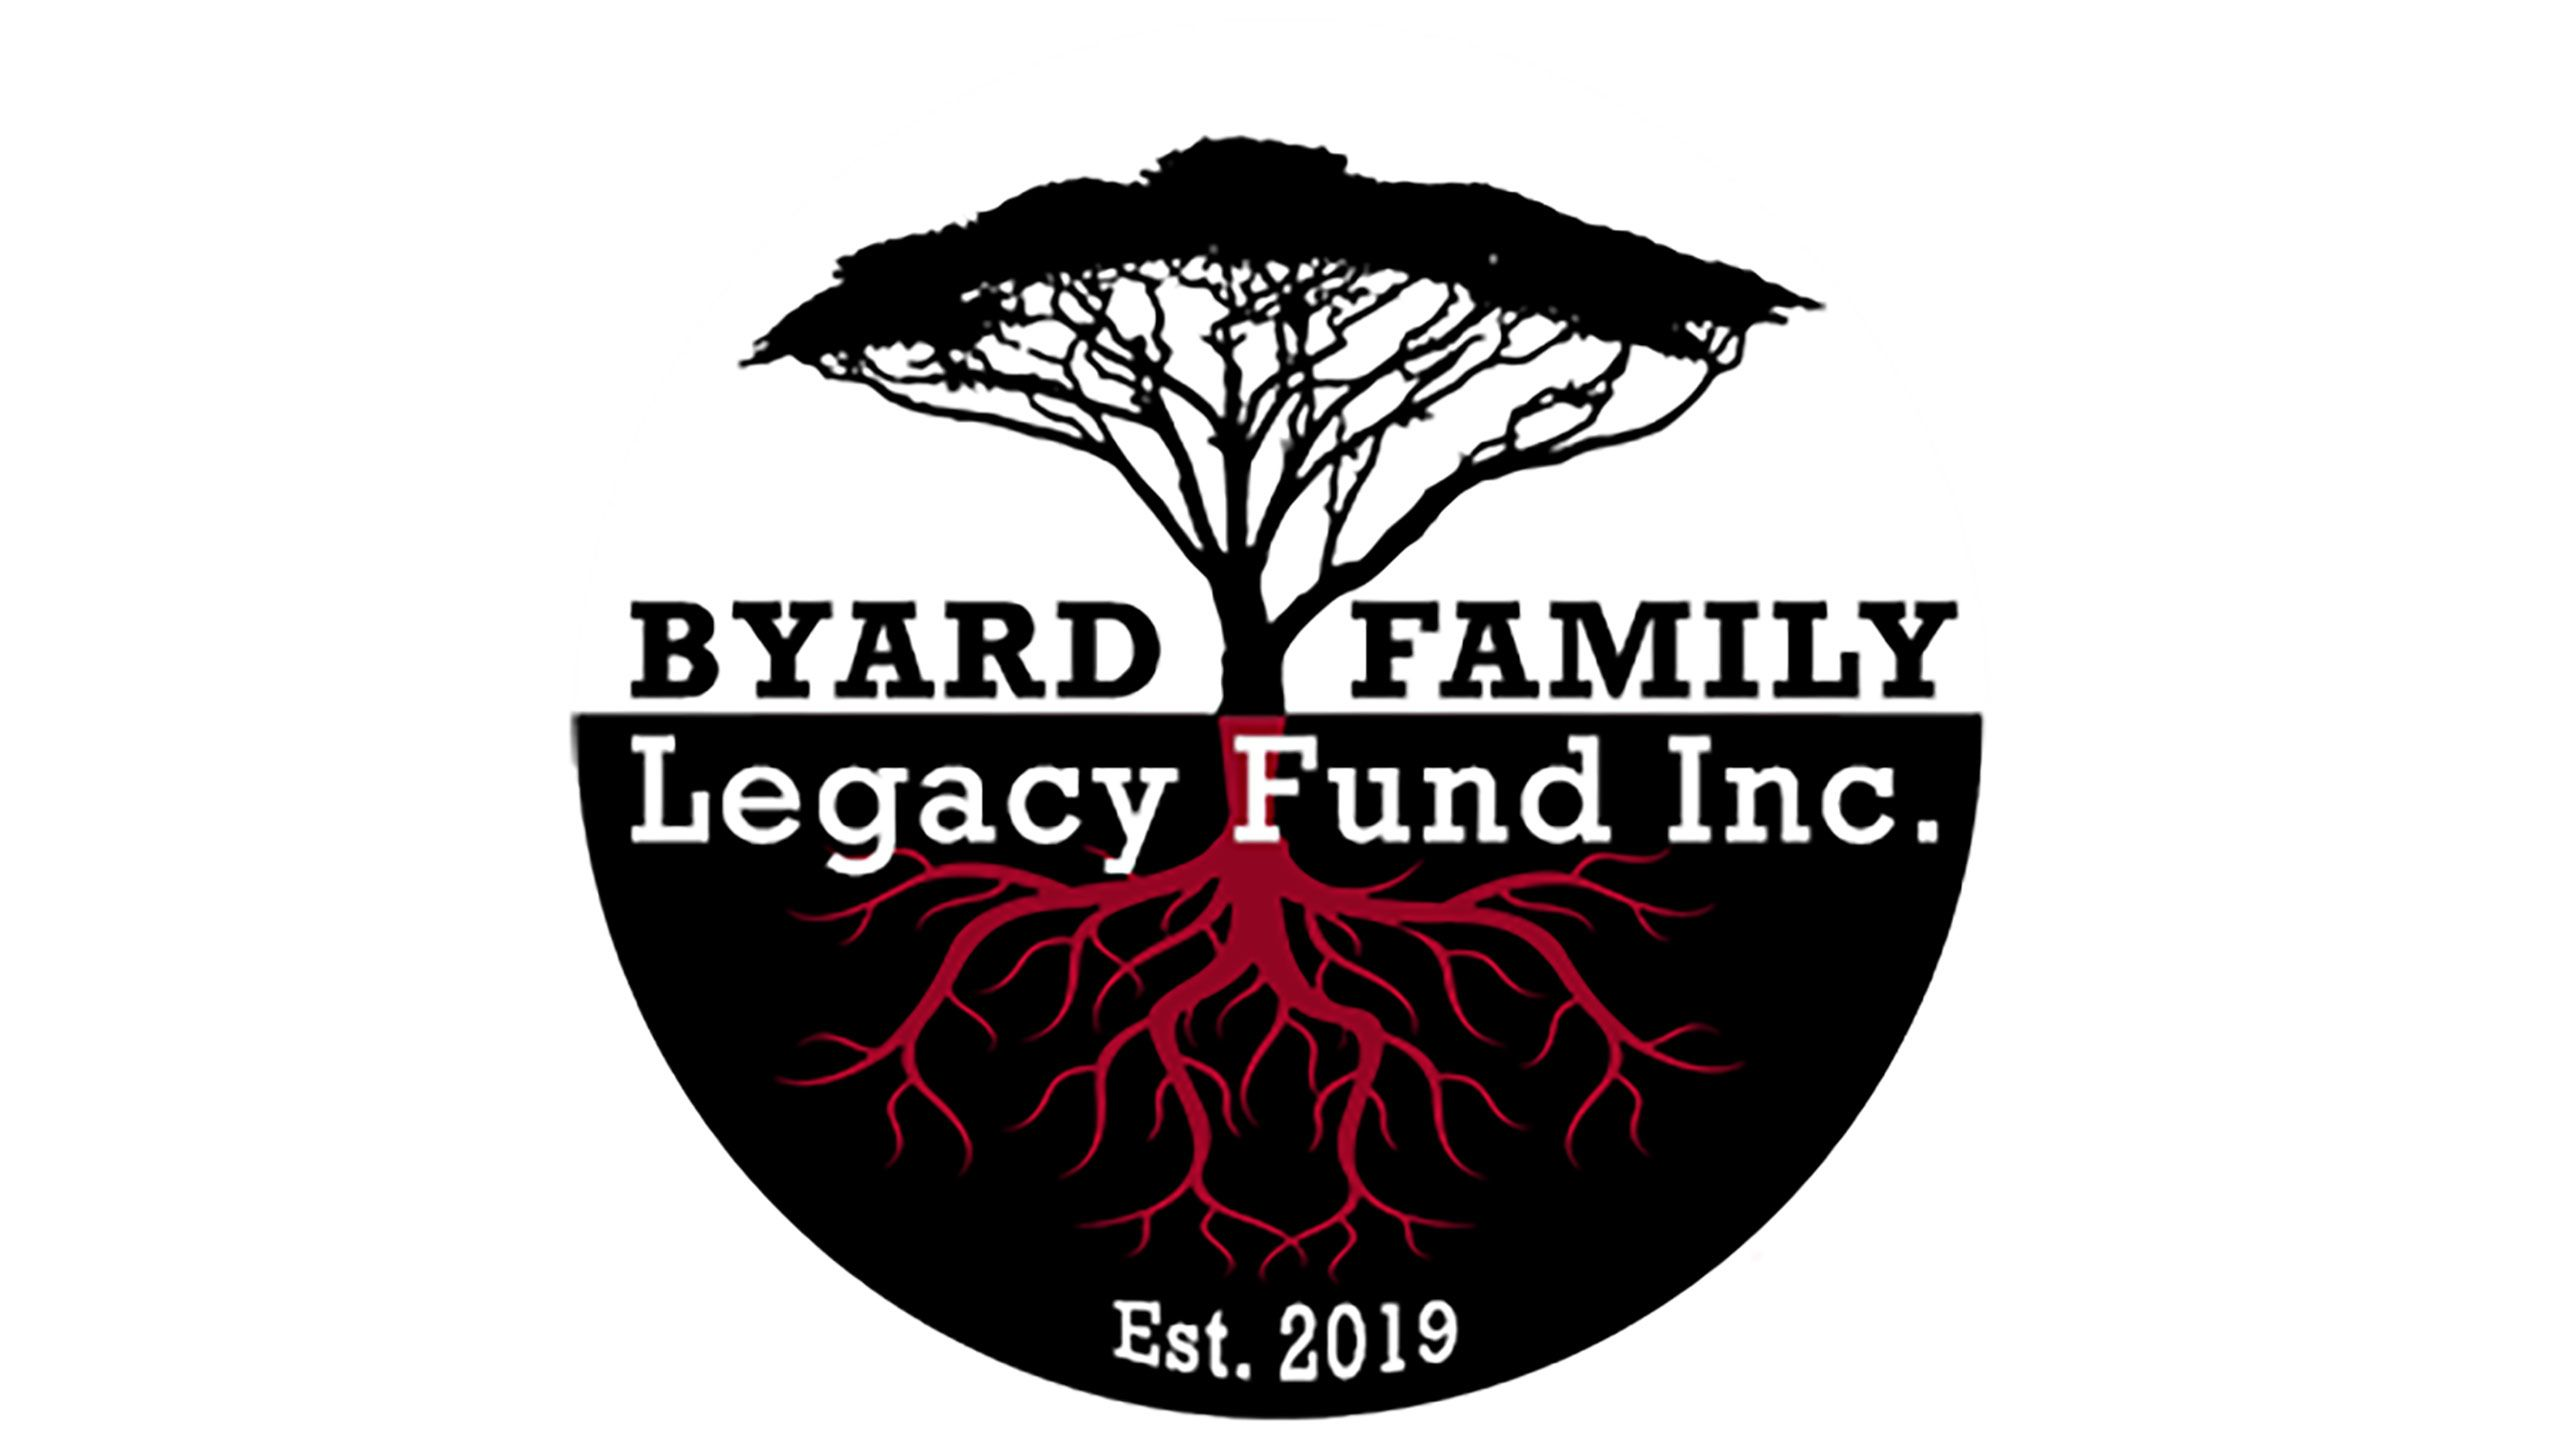 Learn More at ByardFamilyLegacy.org